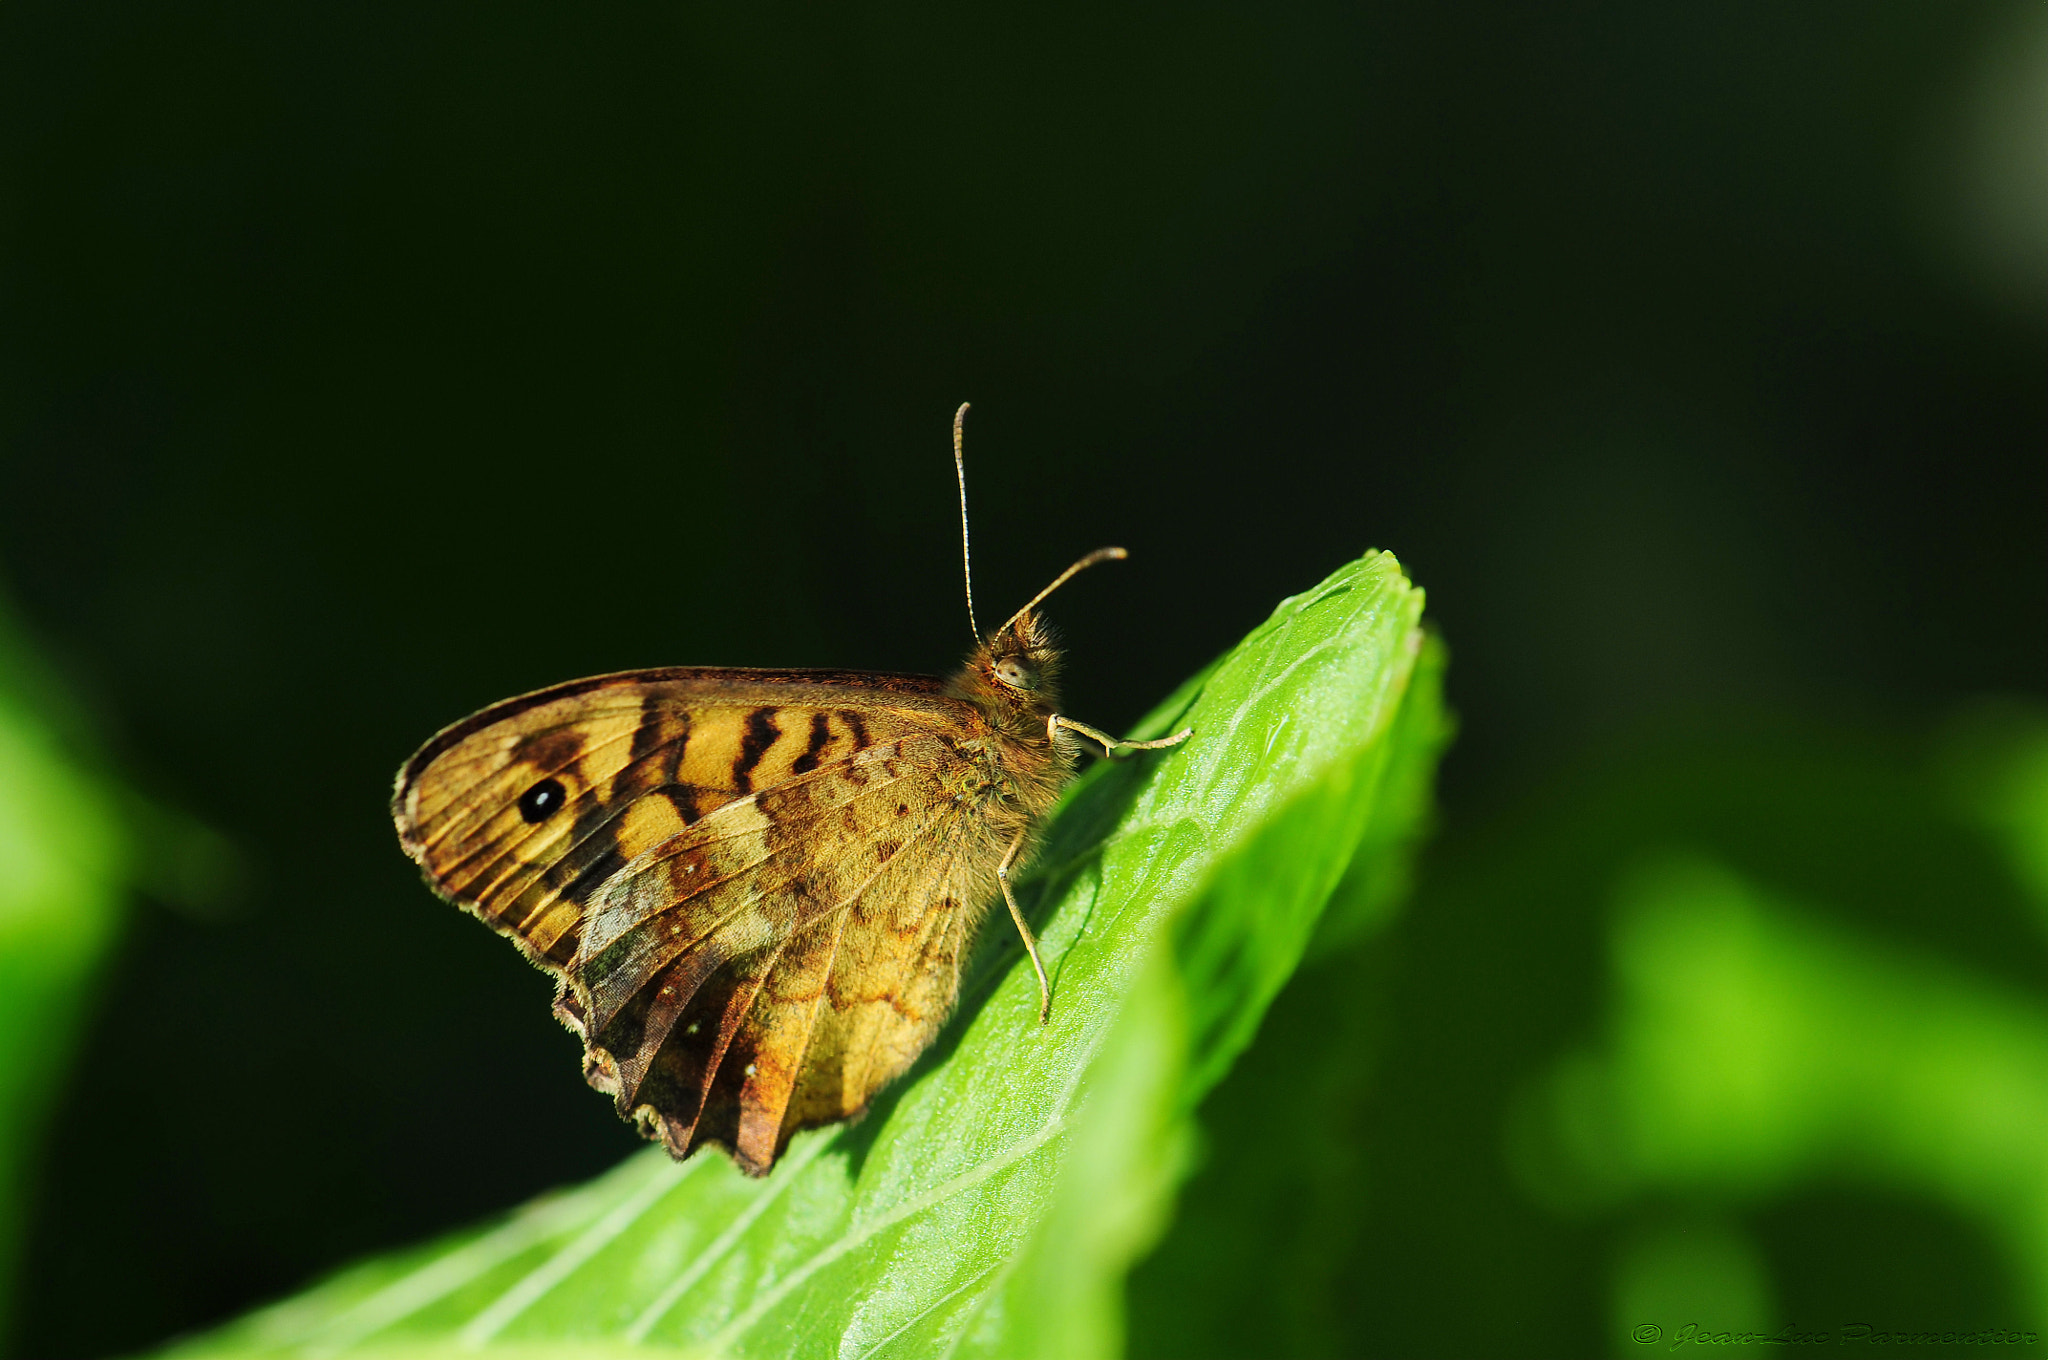 Photograph Butterfly of profile by Jean-luc Parmentier on 500px